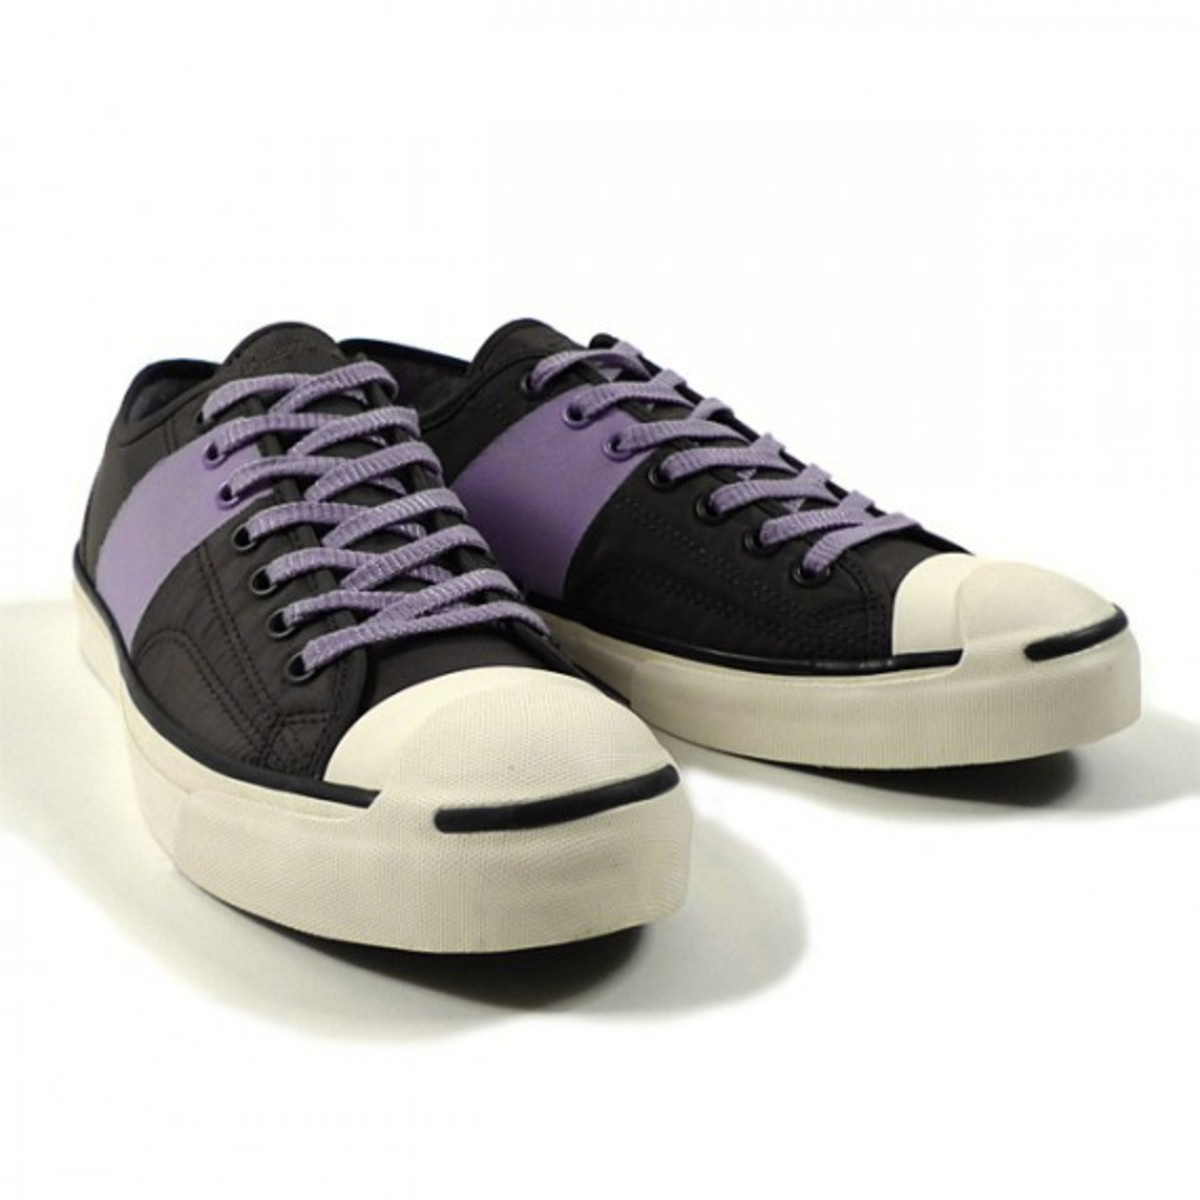 converse-first-string-jack-purcell-johnny-09